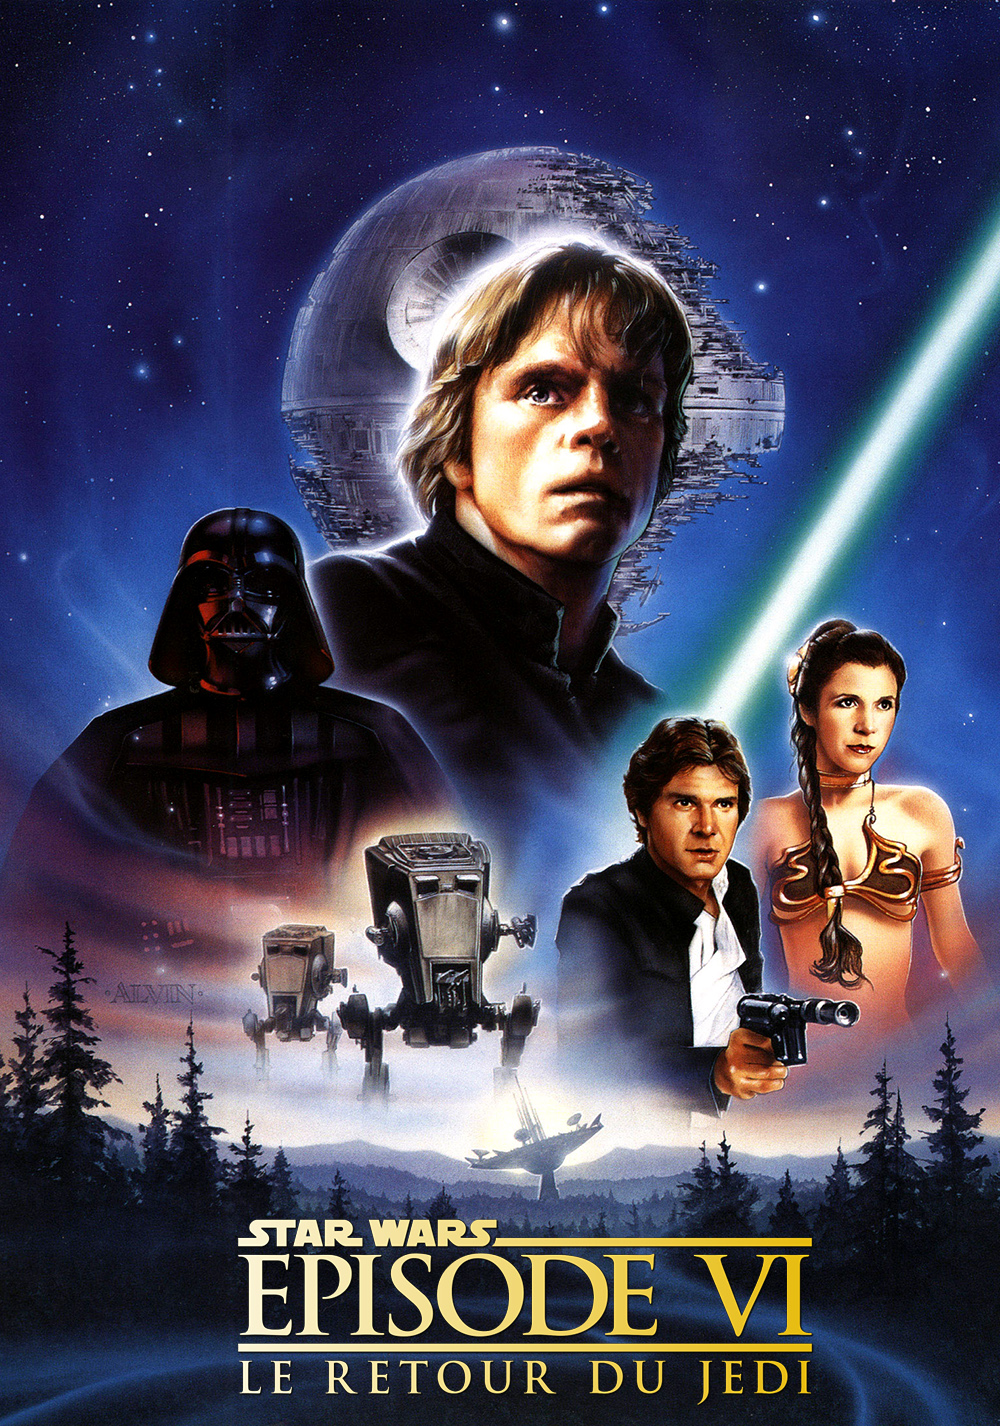 Star wars episode 6 movie poster